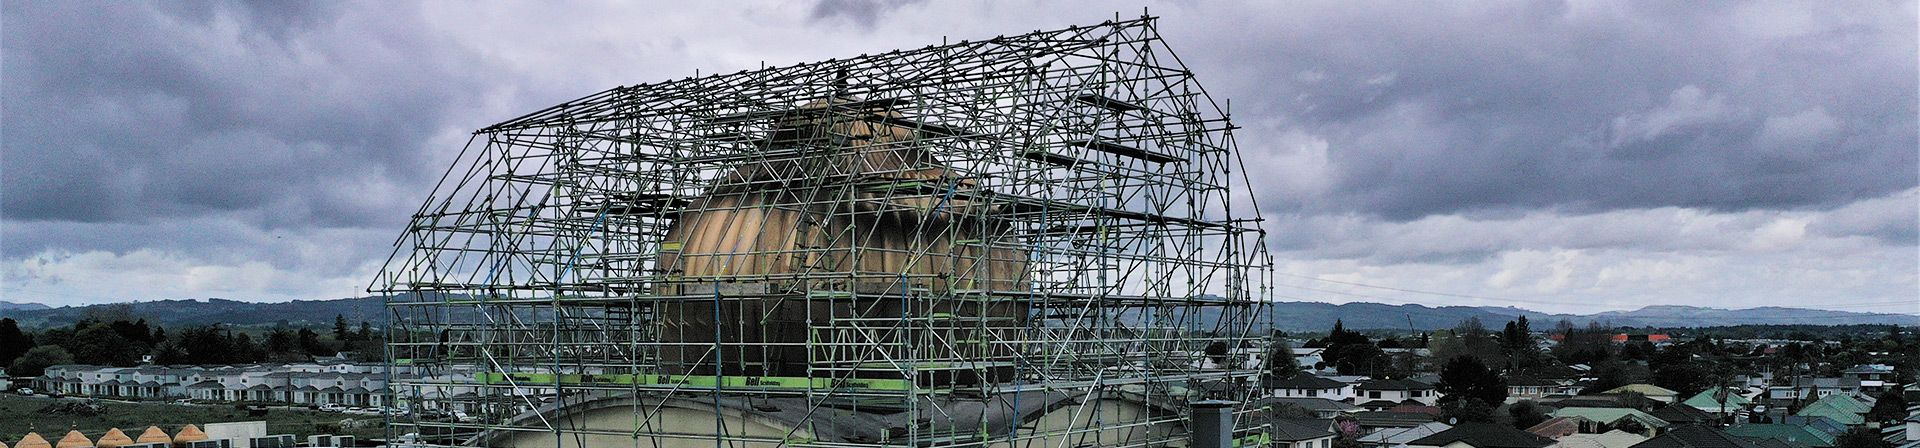 Shrinkwrapping - Bell Scaffolding - High-end Commercial and Light Industrial Scaffolders